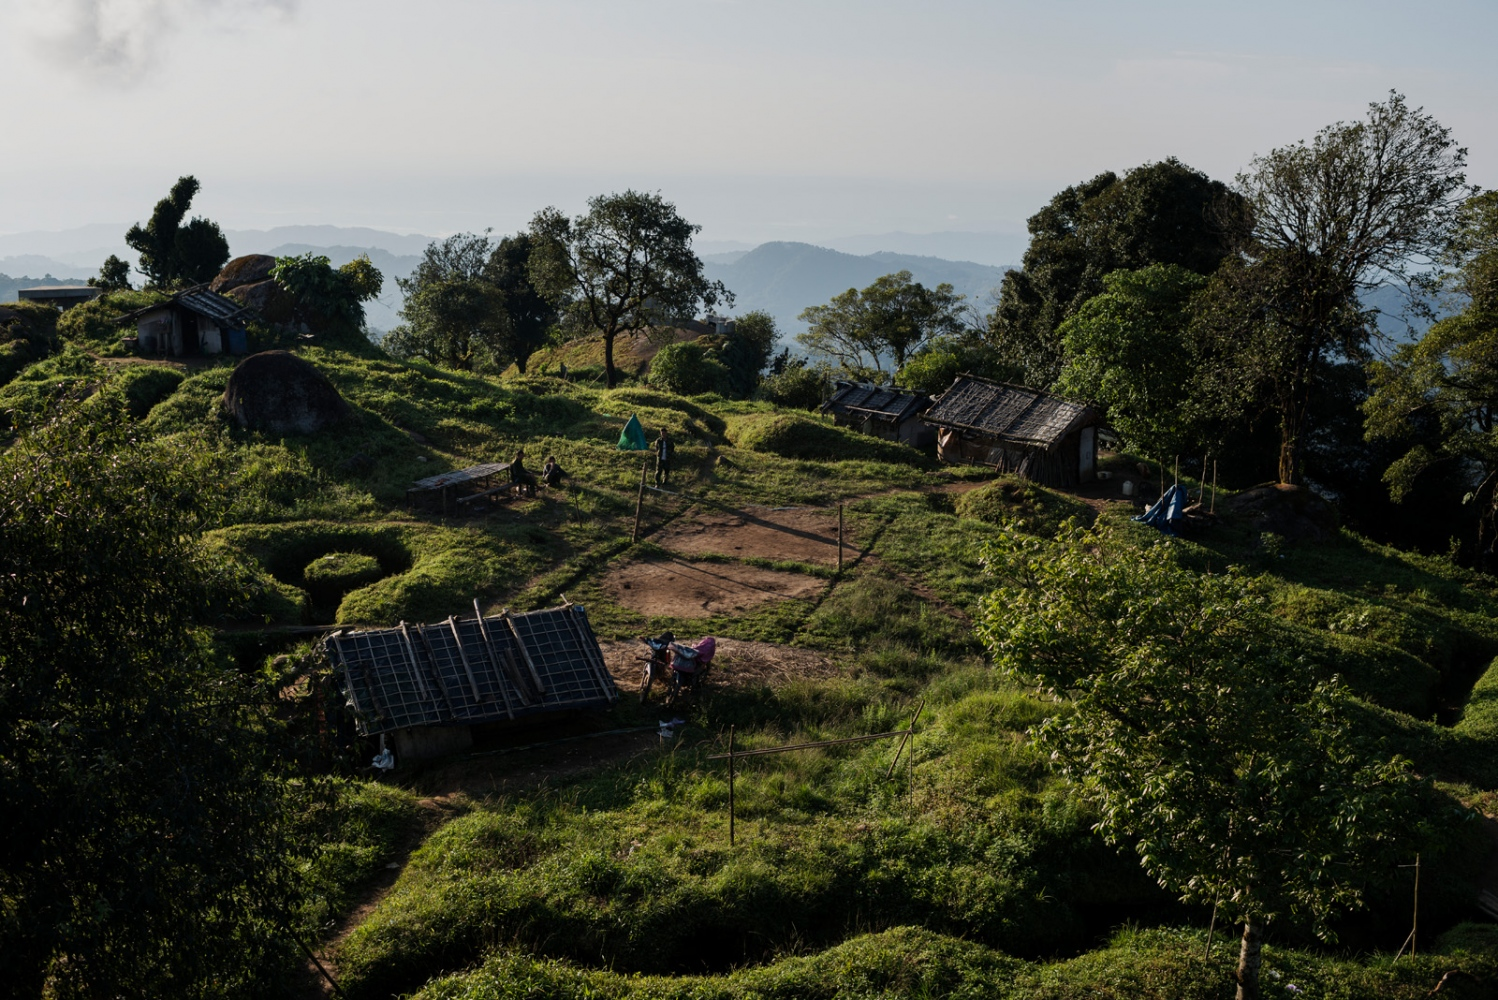 Overview of Lagat Bum, one of the K.I.A. frontline outposts near Mai Ja Yang in Kachin State, Myanmar.